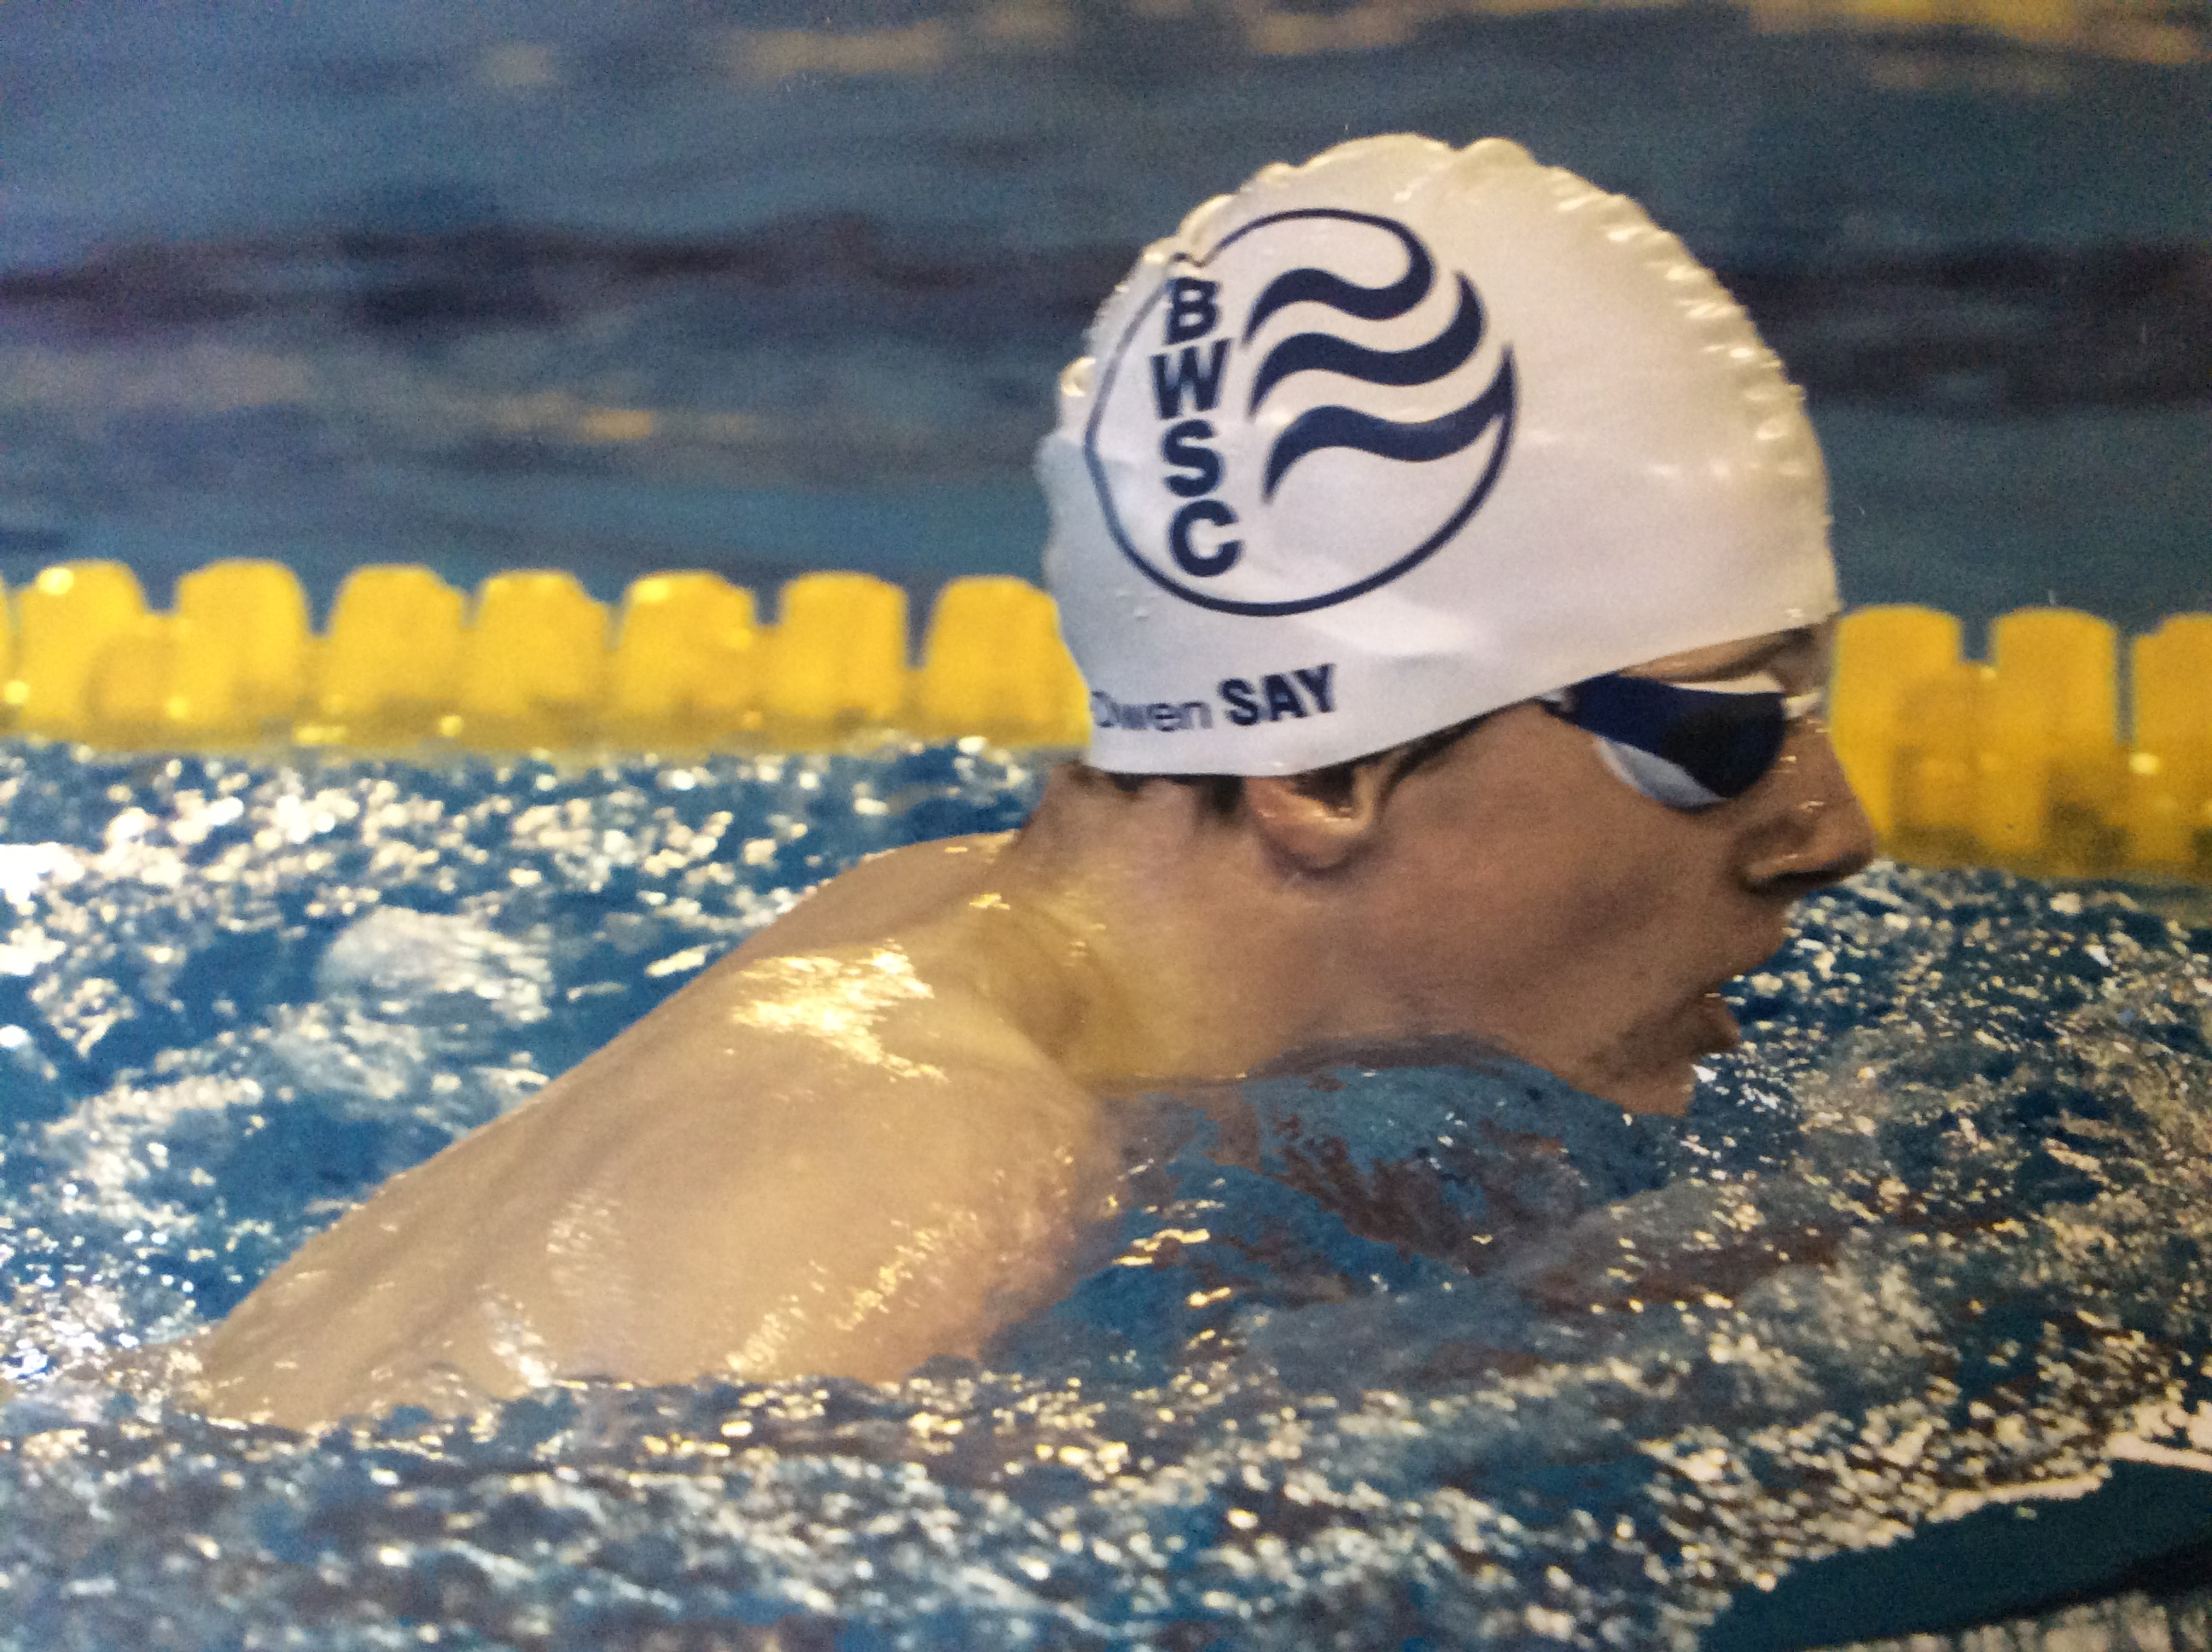 Owen and tyler competing at para world championships bracknell wokingham swimming club for Wokingham swimming pool timetable